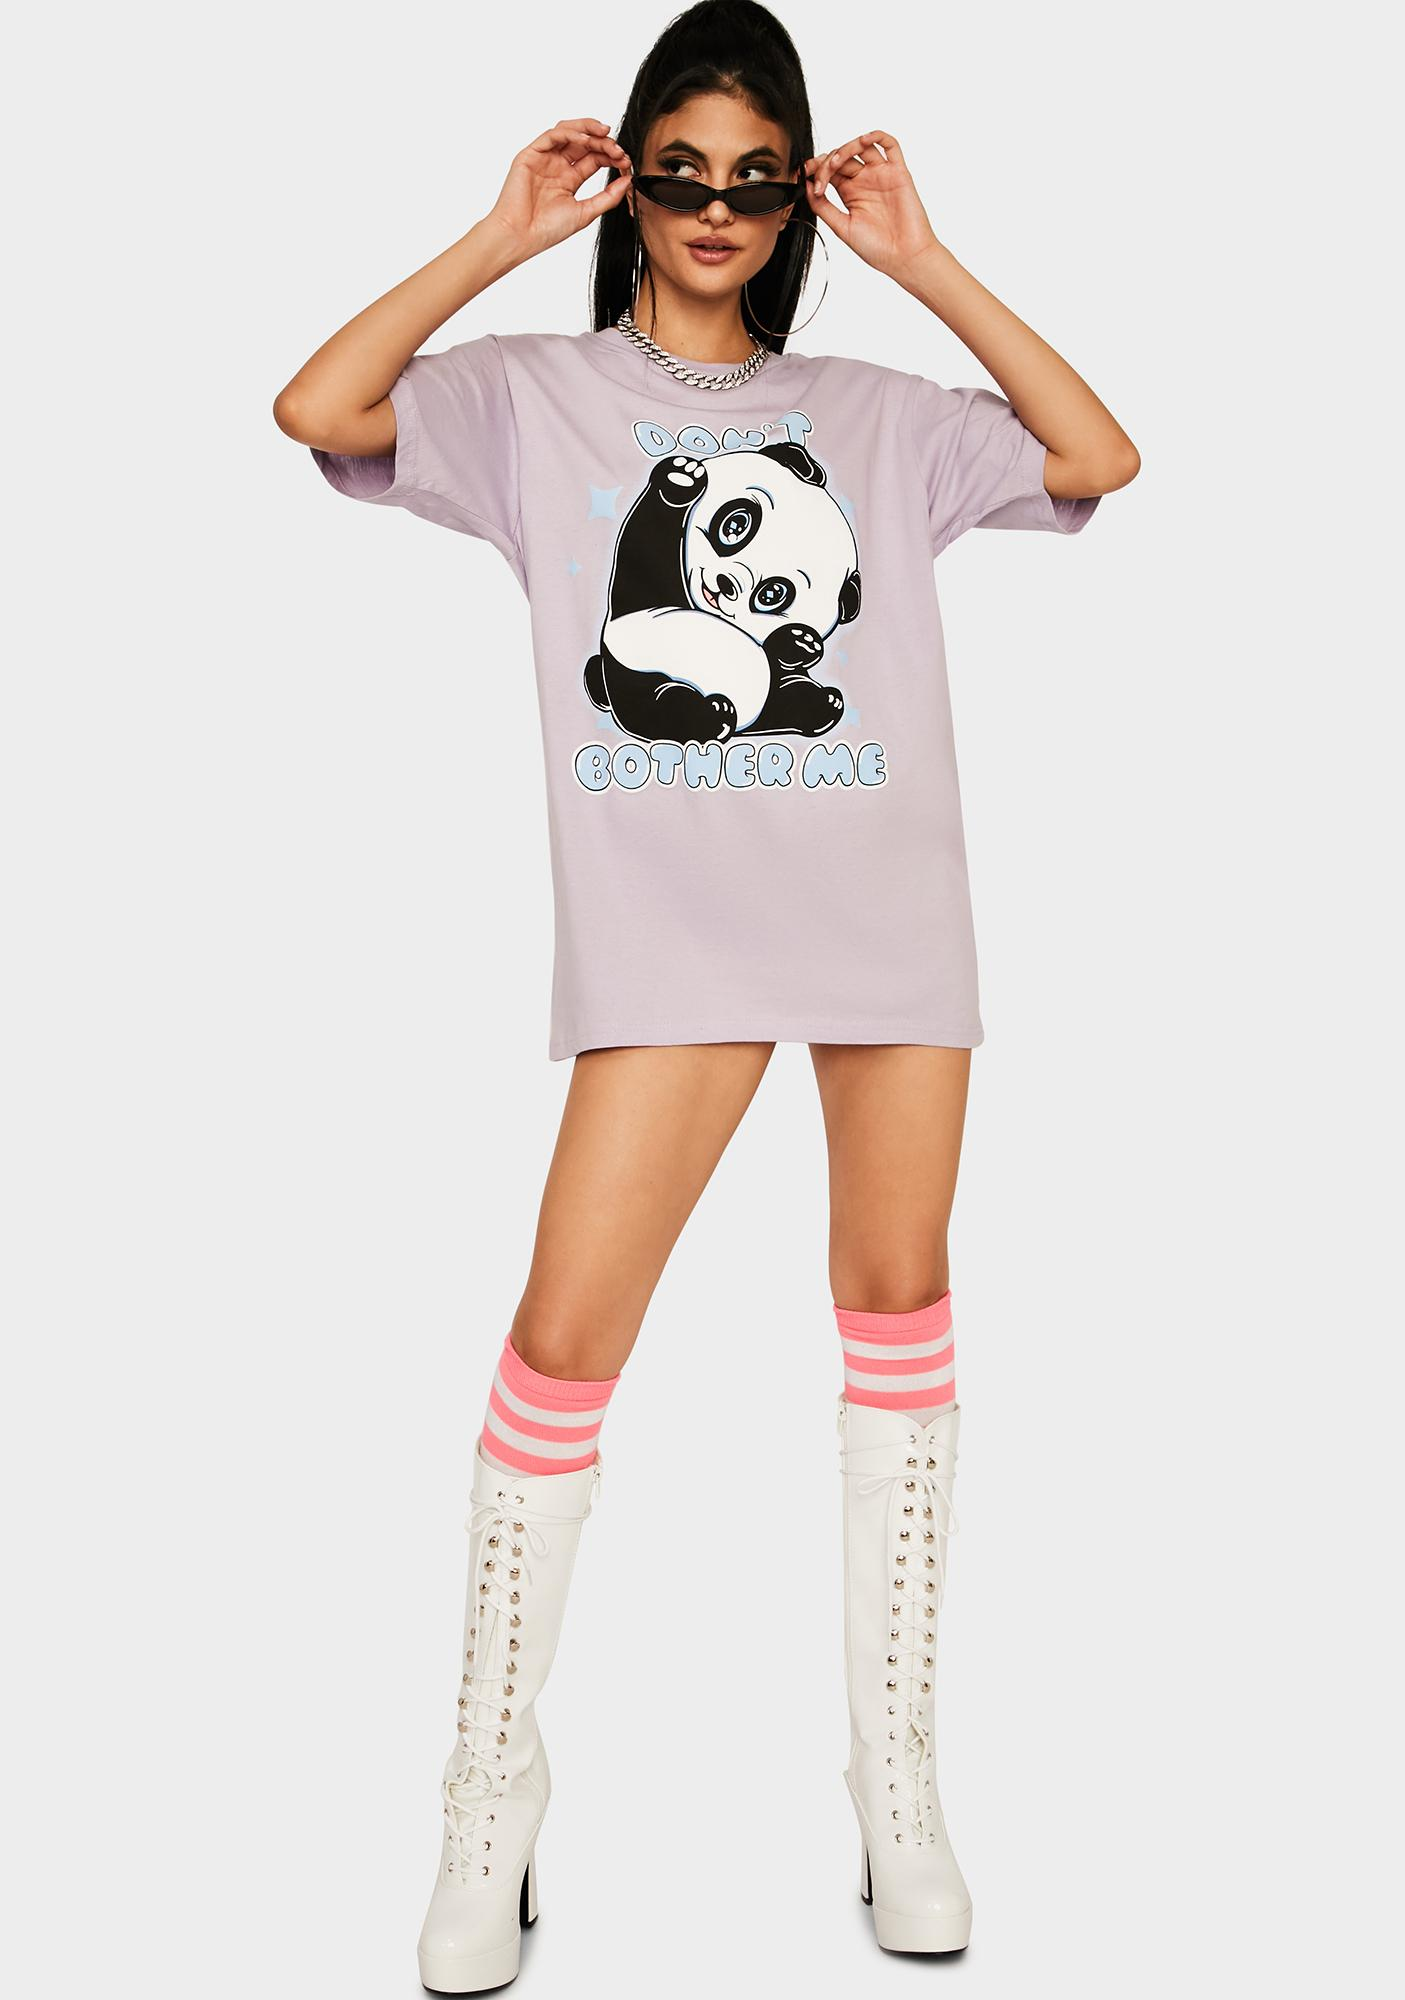 By Samii Ryan Bother Me Graphic Tee